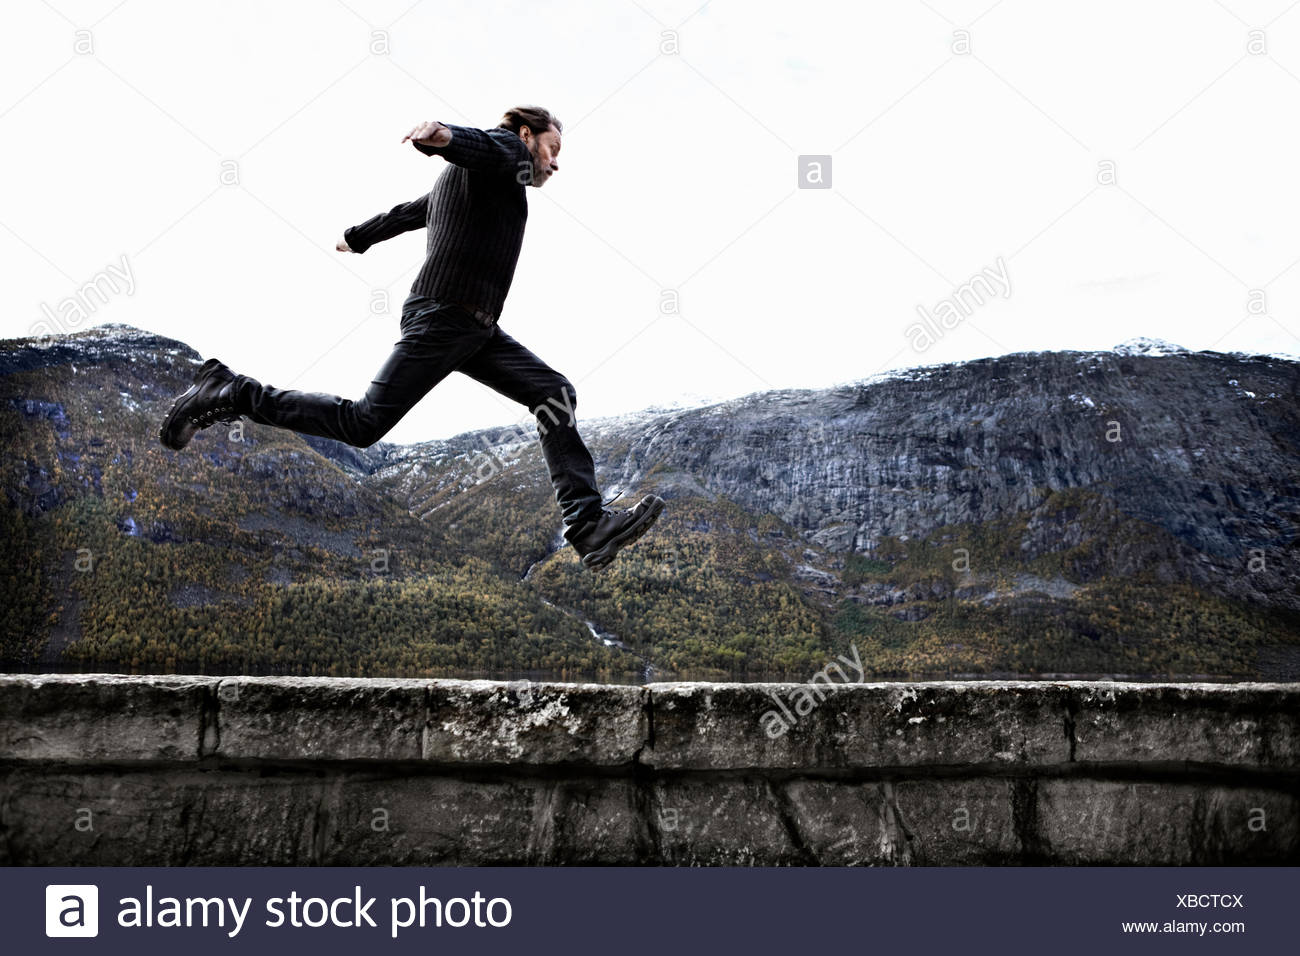 La Norvège, Odda, Man jumping over mur de pierre Photo Stock